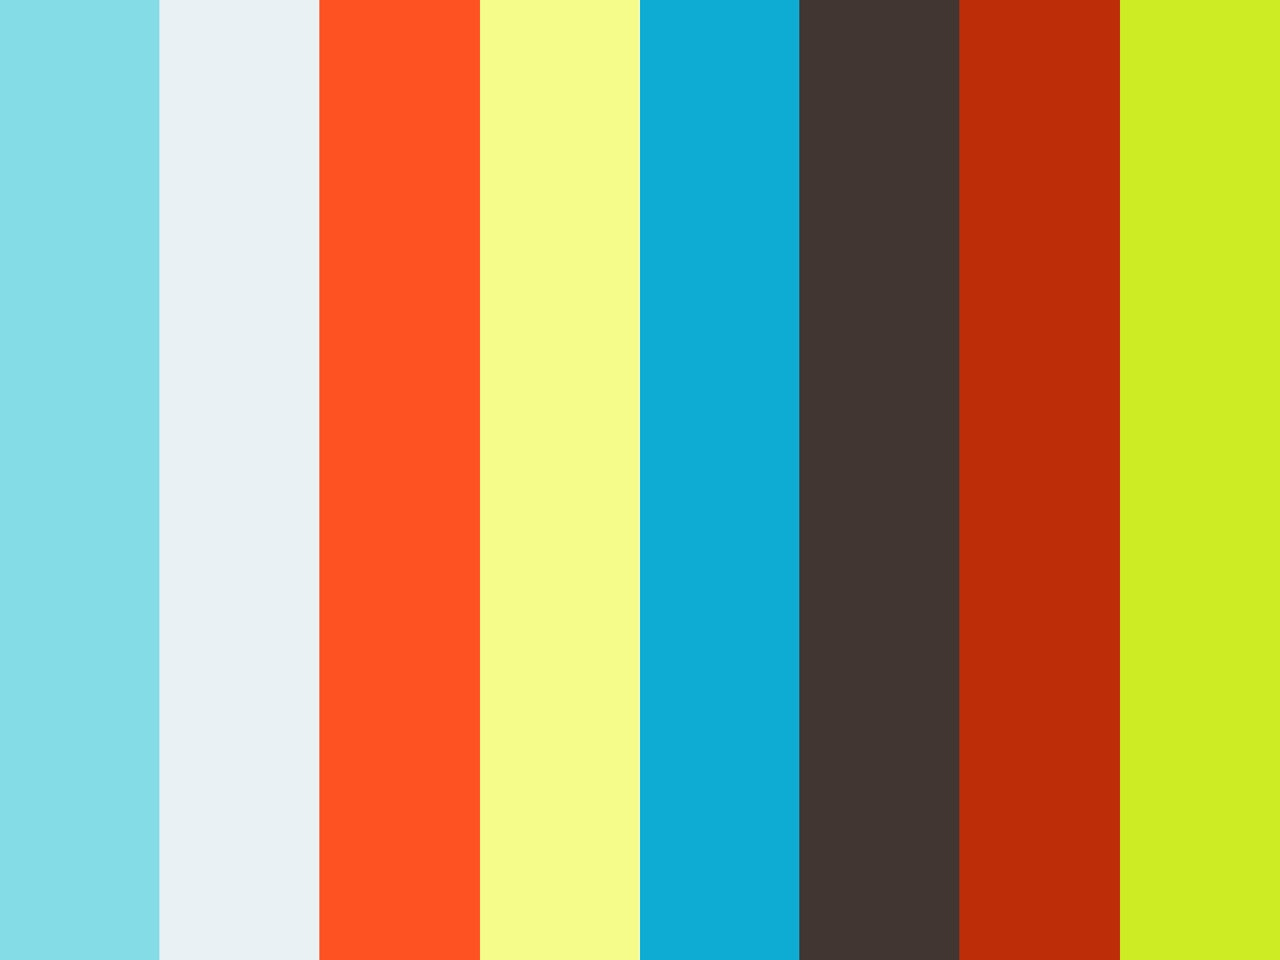 THE DISCOVERY Atticus Mitchell - Toby on Vimeo